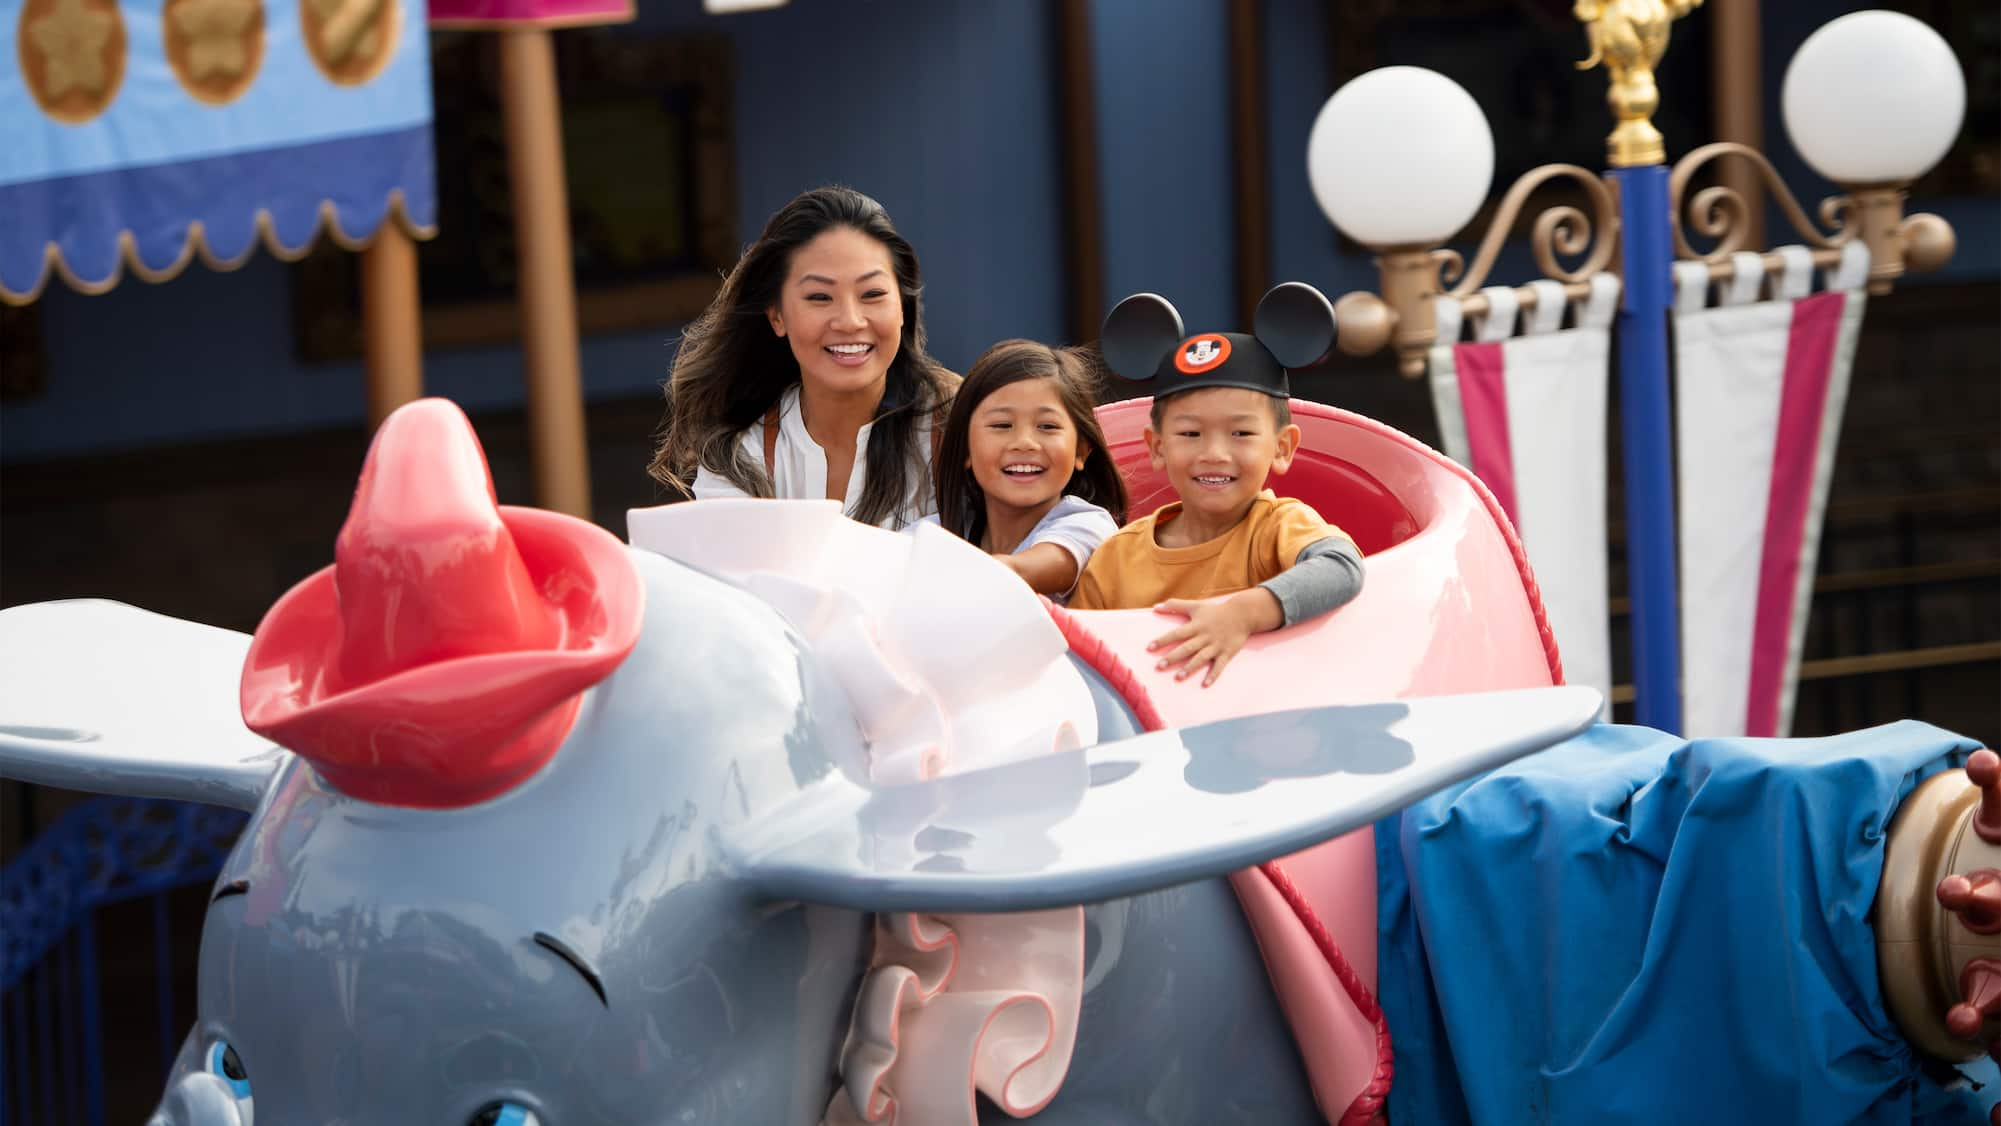 Dumbo the Flying Elephant | Rides & Attractions | Disneyland